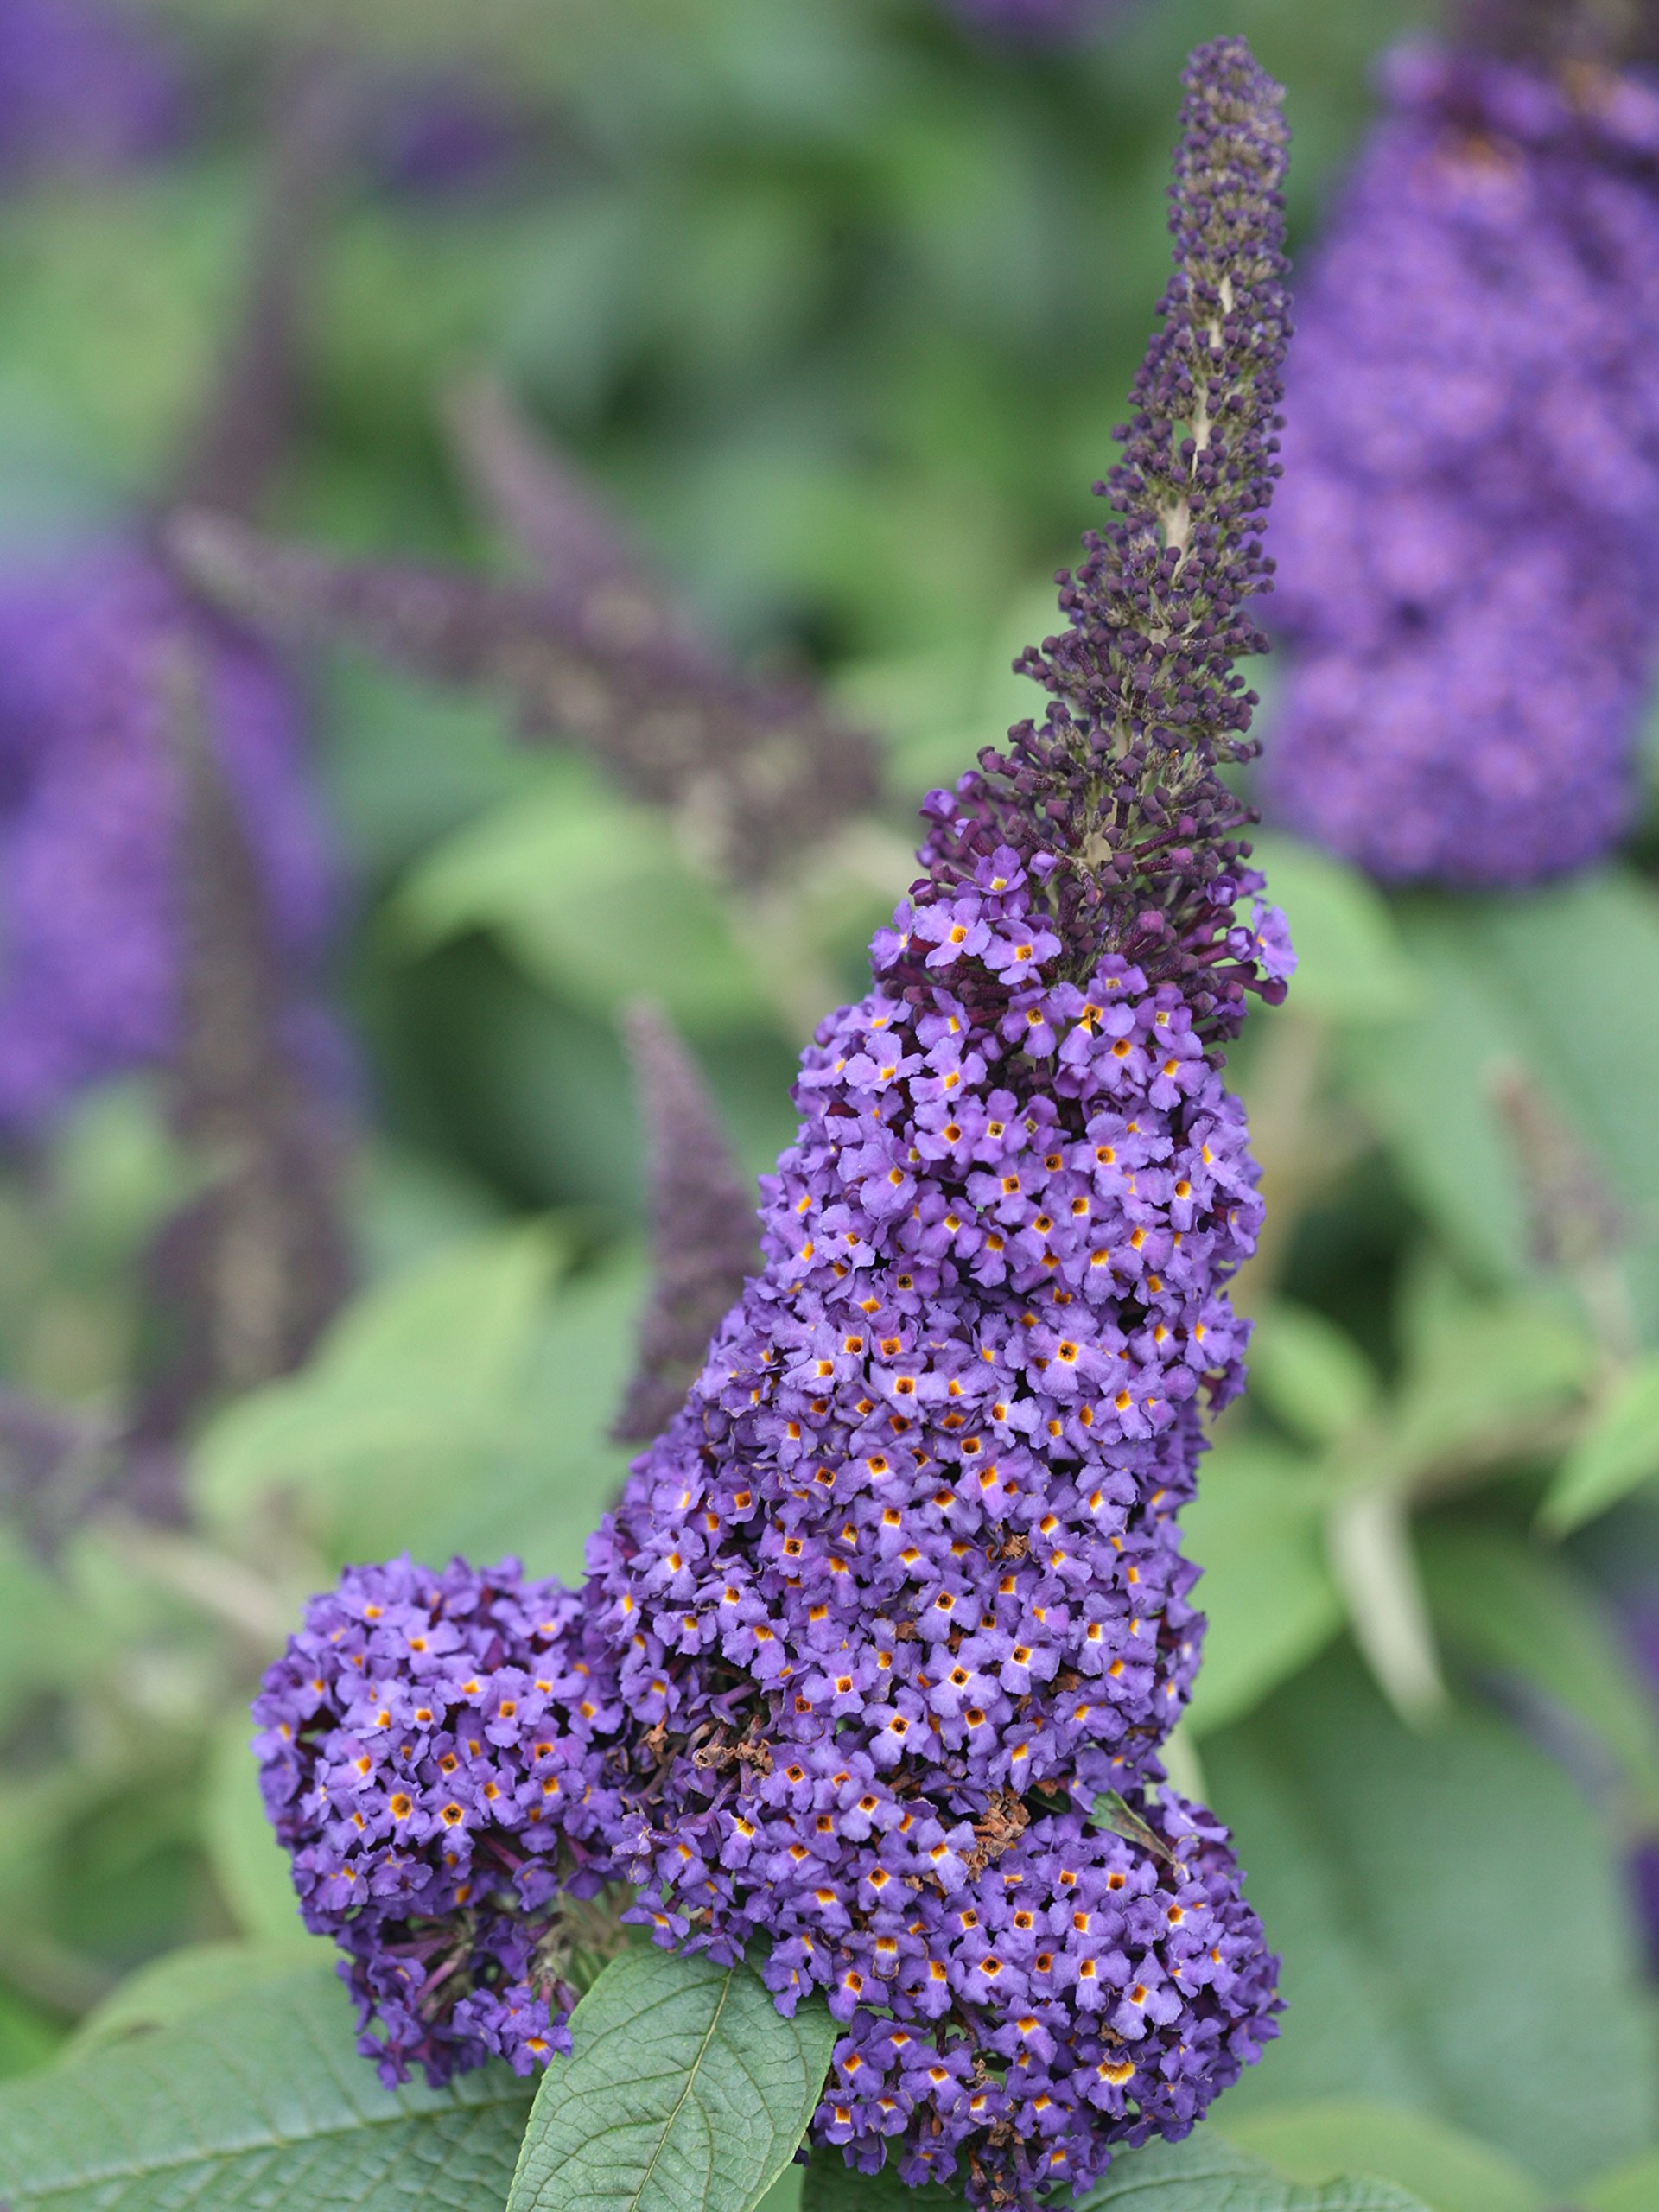 Pugster Blue Butterfly Bush (Buddleia) Live Shrub, Blue Flowers, 1 Gallon by Proven Winners (Image #2)